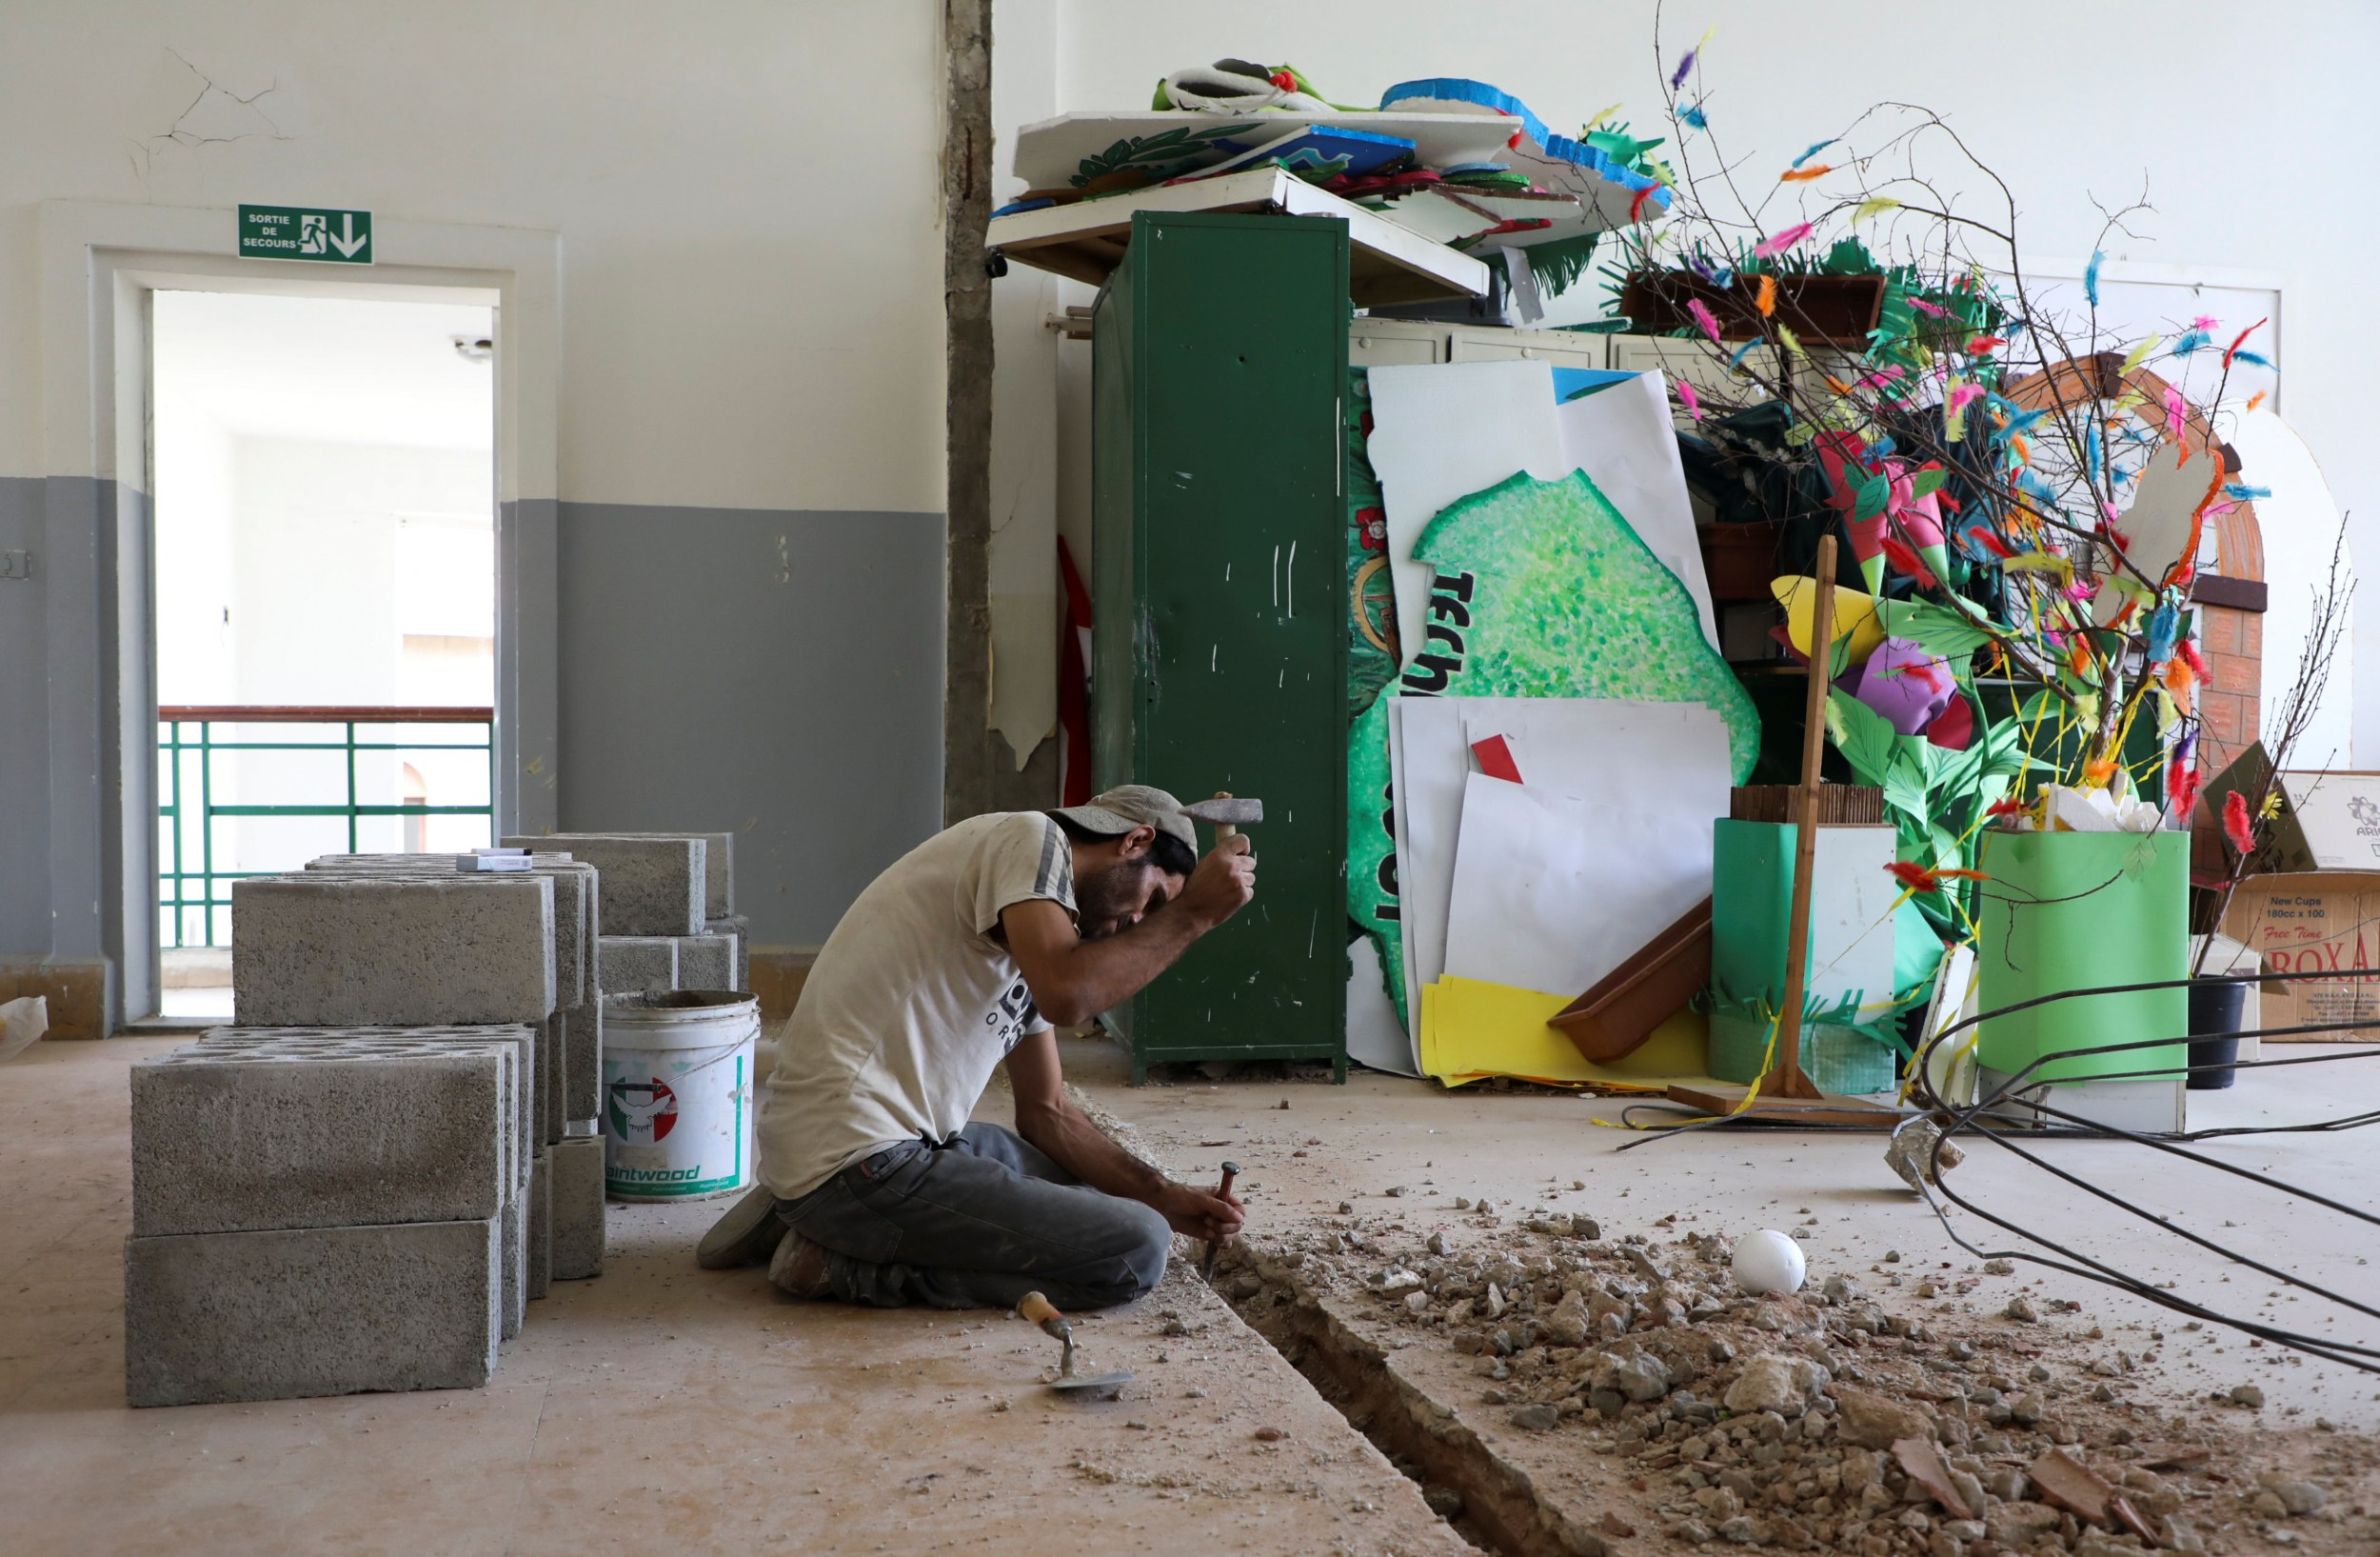 A man works on repairs inside Sagesse Beyrouth school on 24 September 2020, which was damaged due to the explosion at the Beirut port on 4 August 2020. (Reuters)